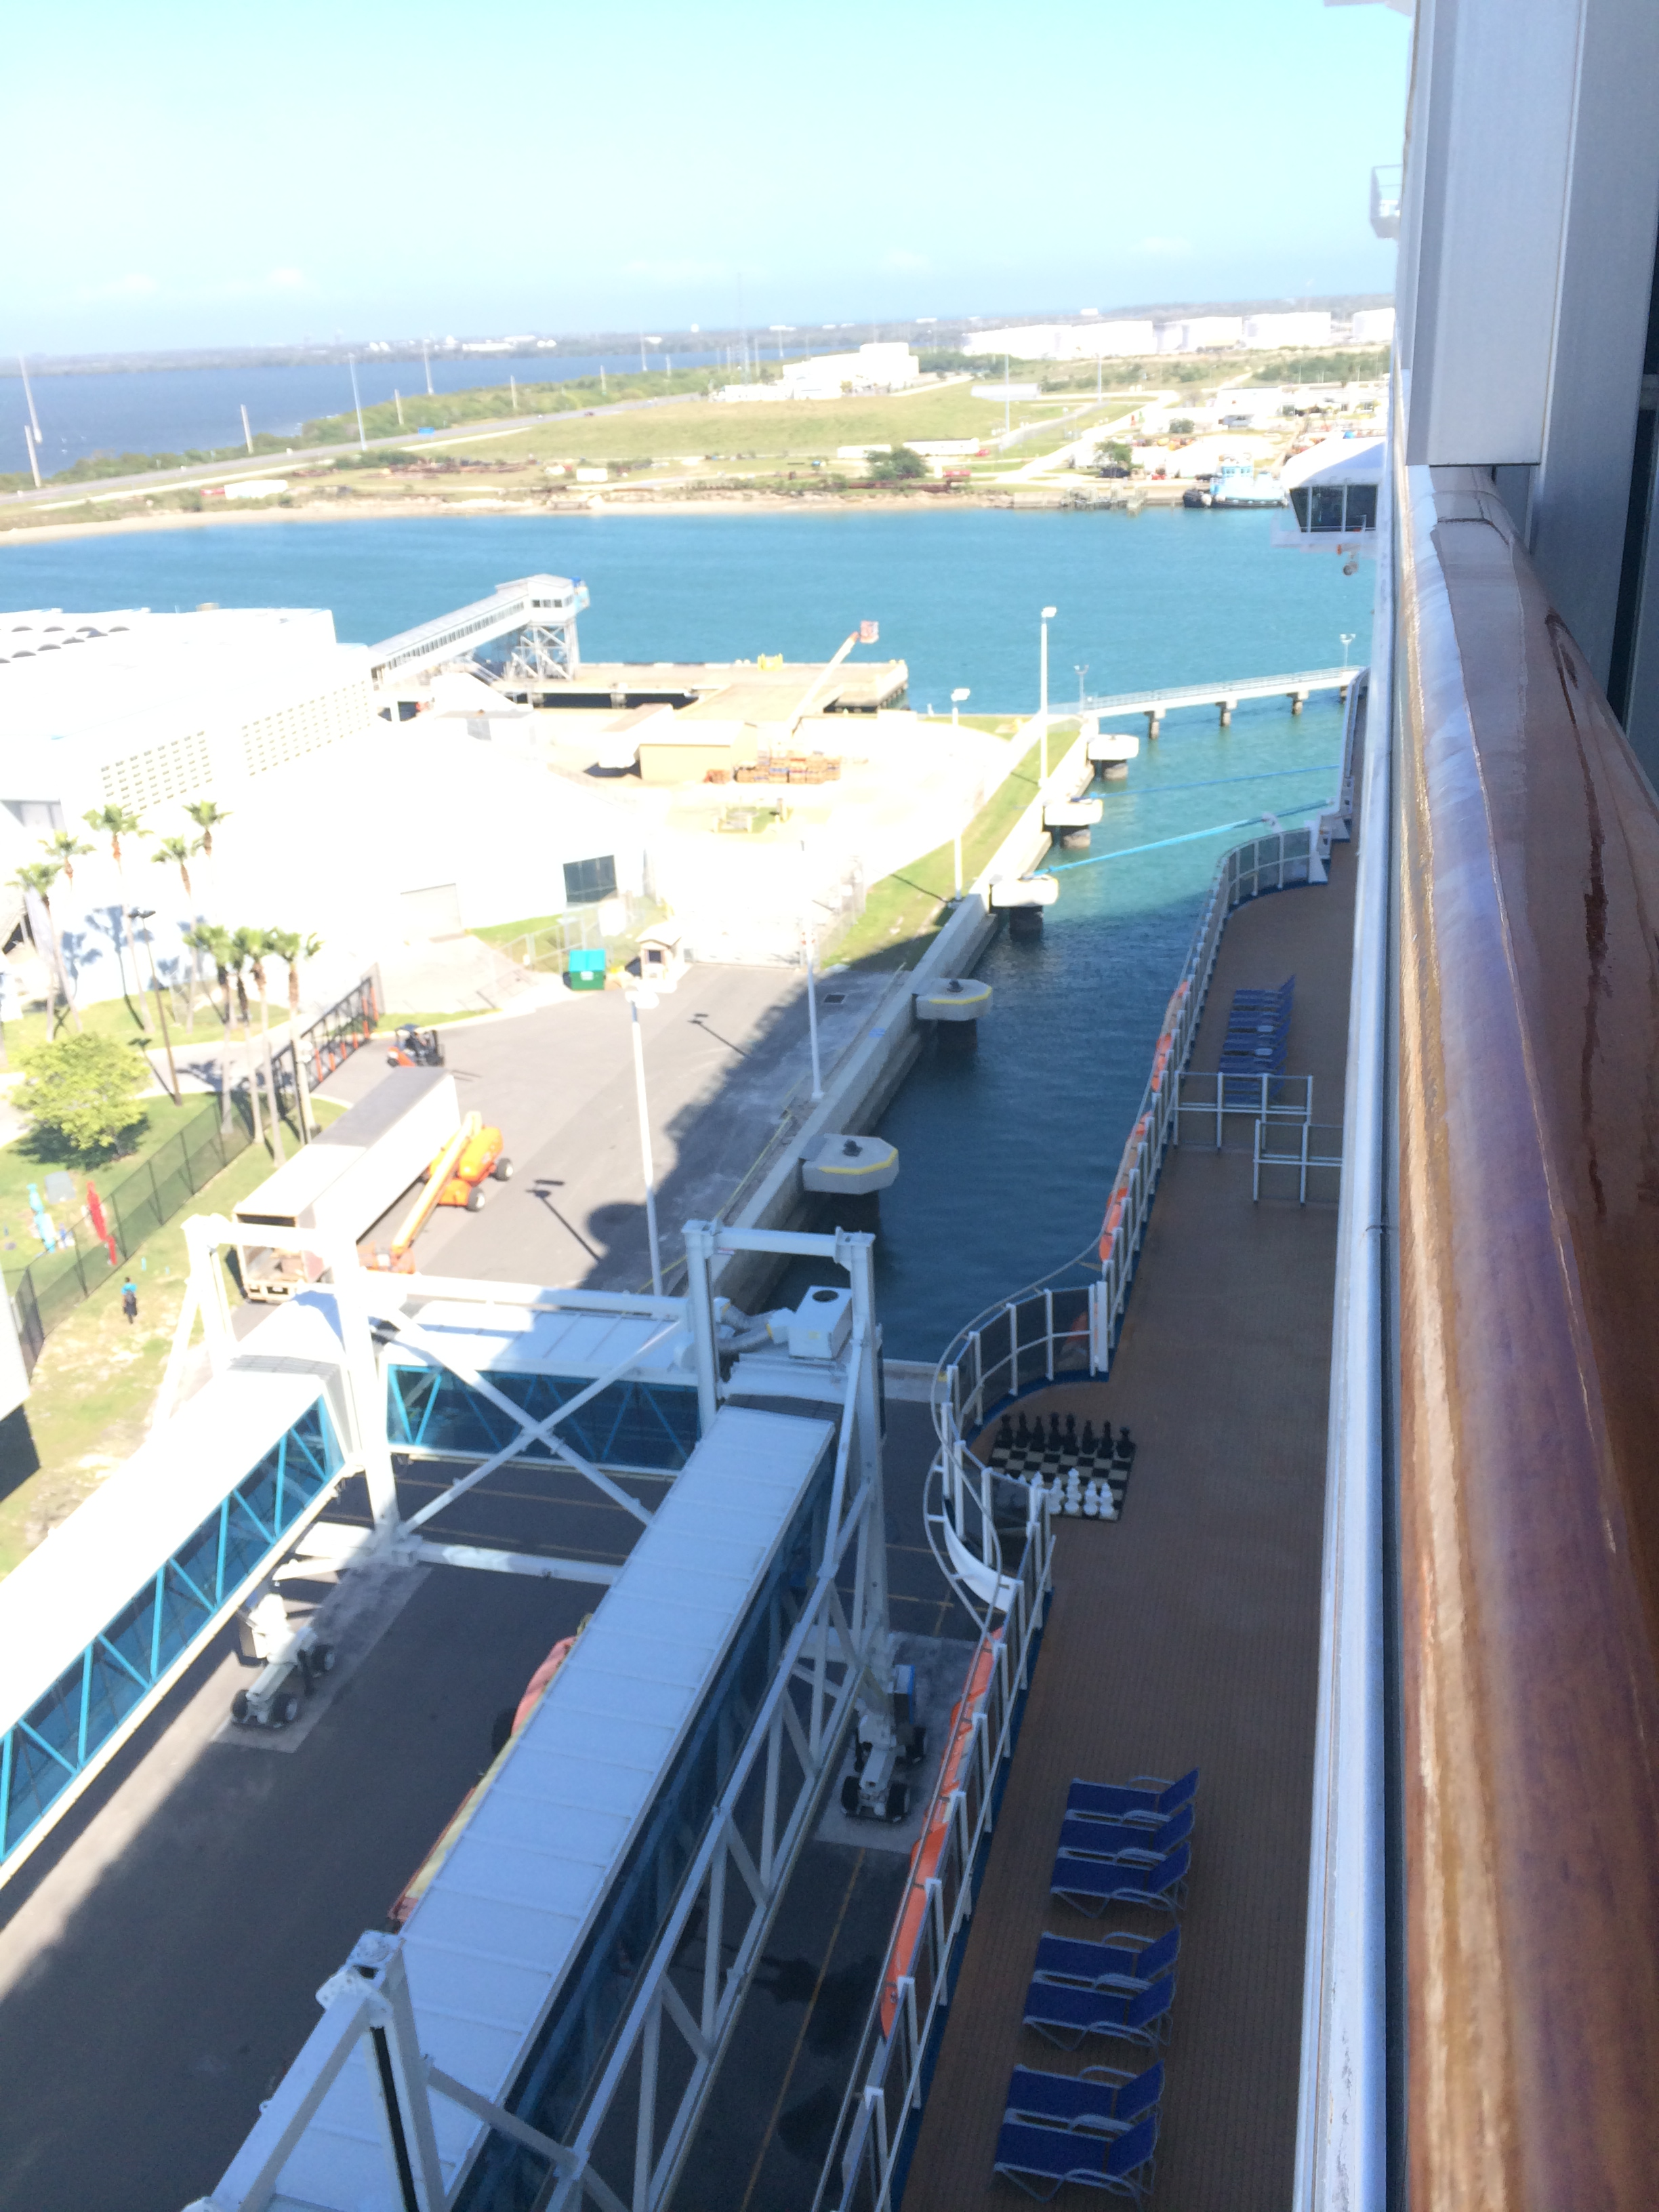 Day 1 Carnival Dream Cruise Report Western Caribbean